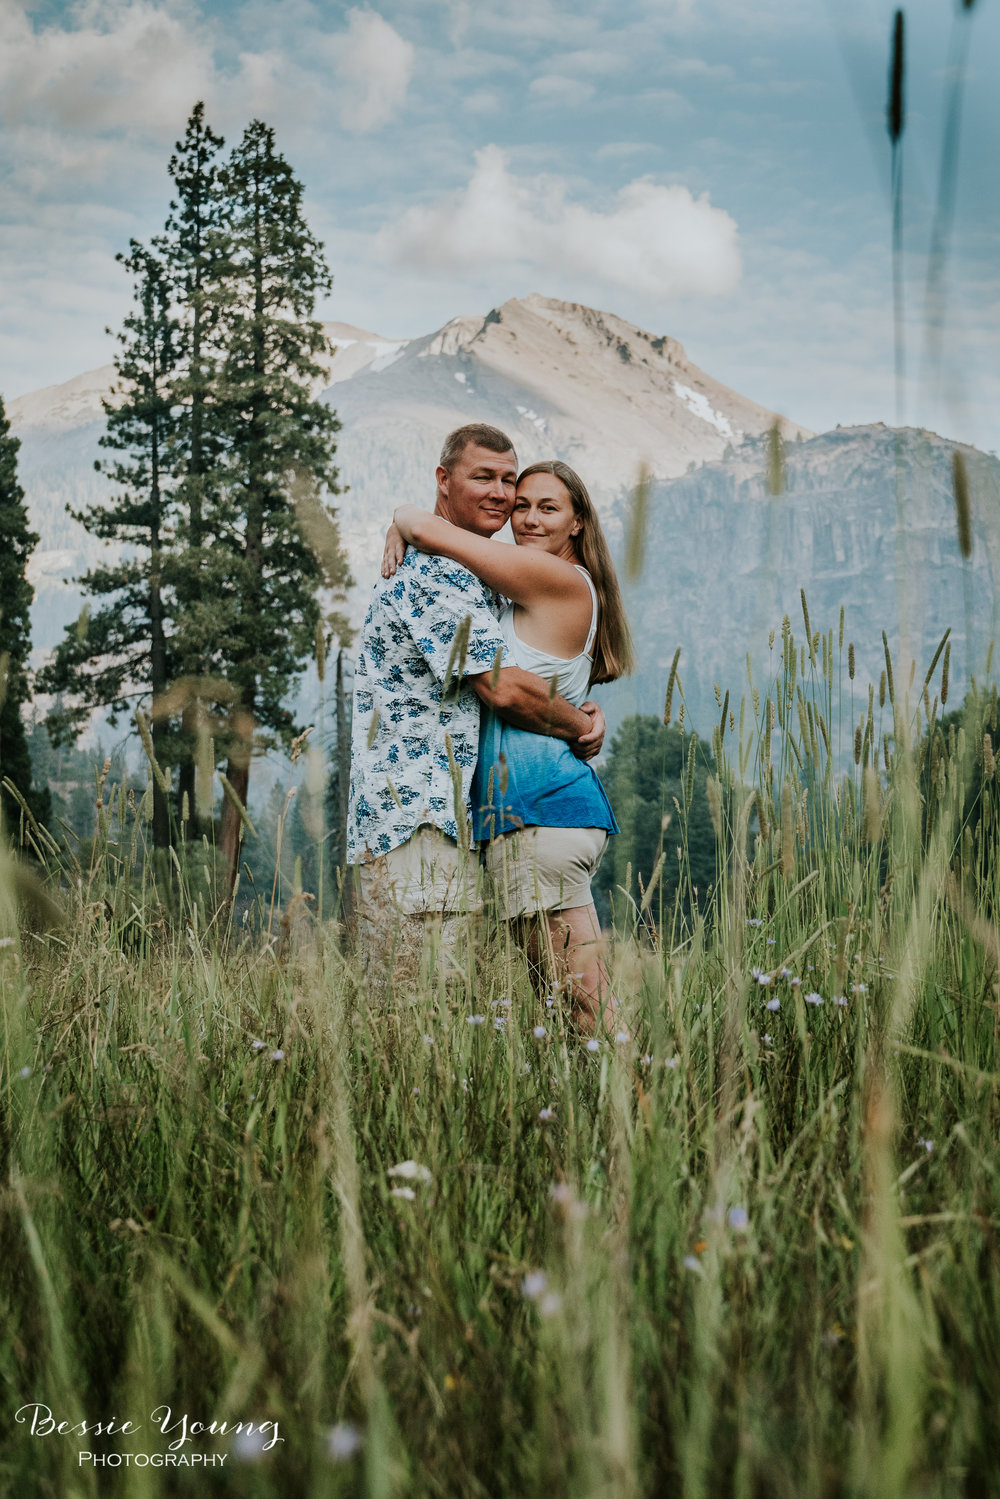 Scott and Lora Kennedy Meadows Destination Engagement Session 2017 - Bessie Young Photography-174.jpg